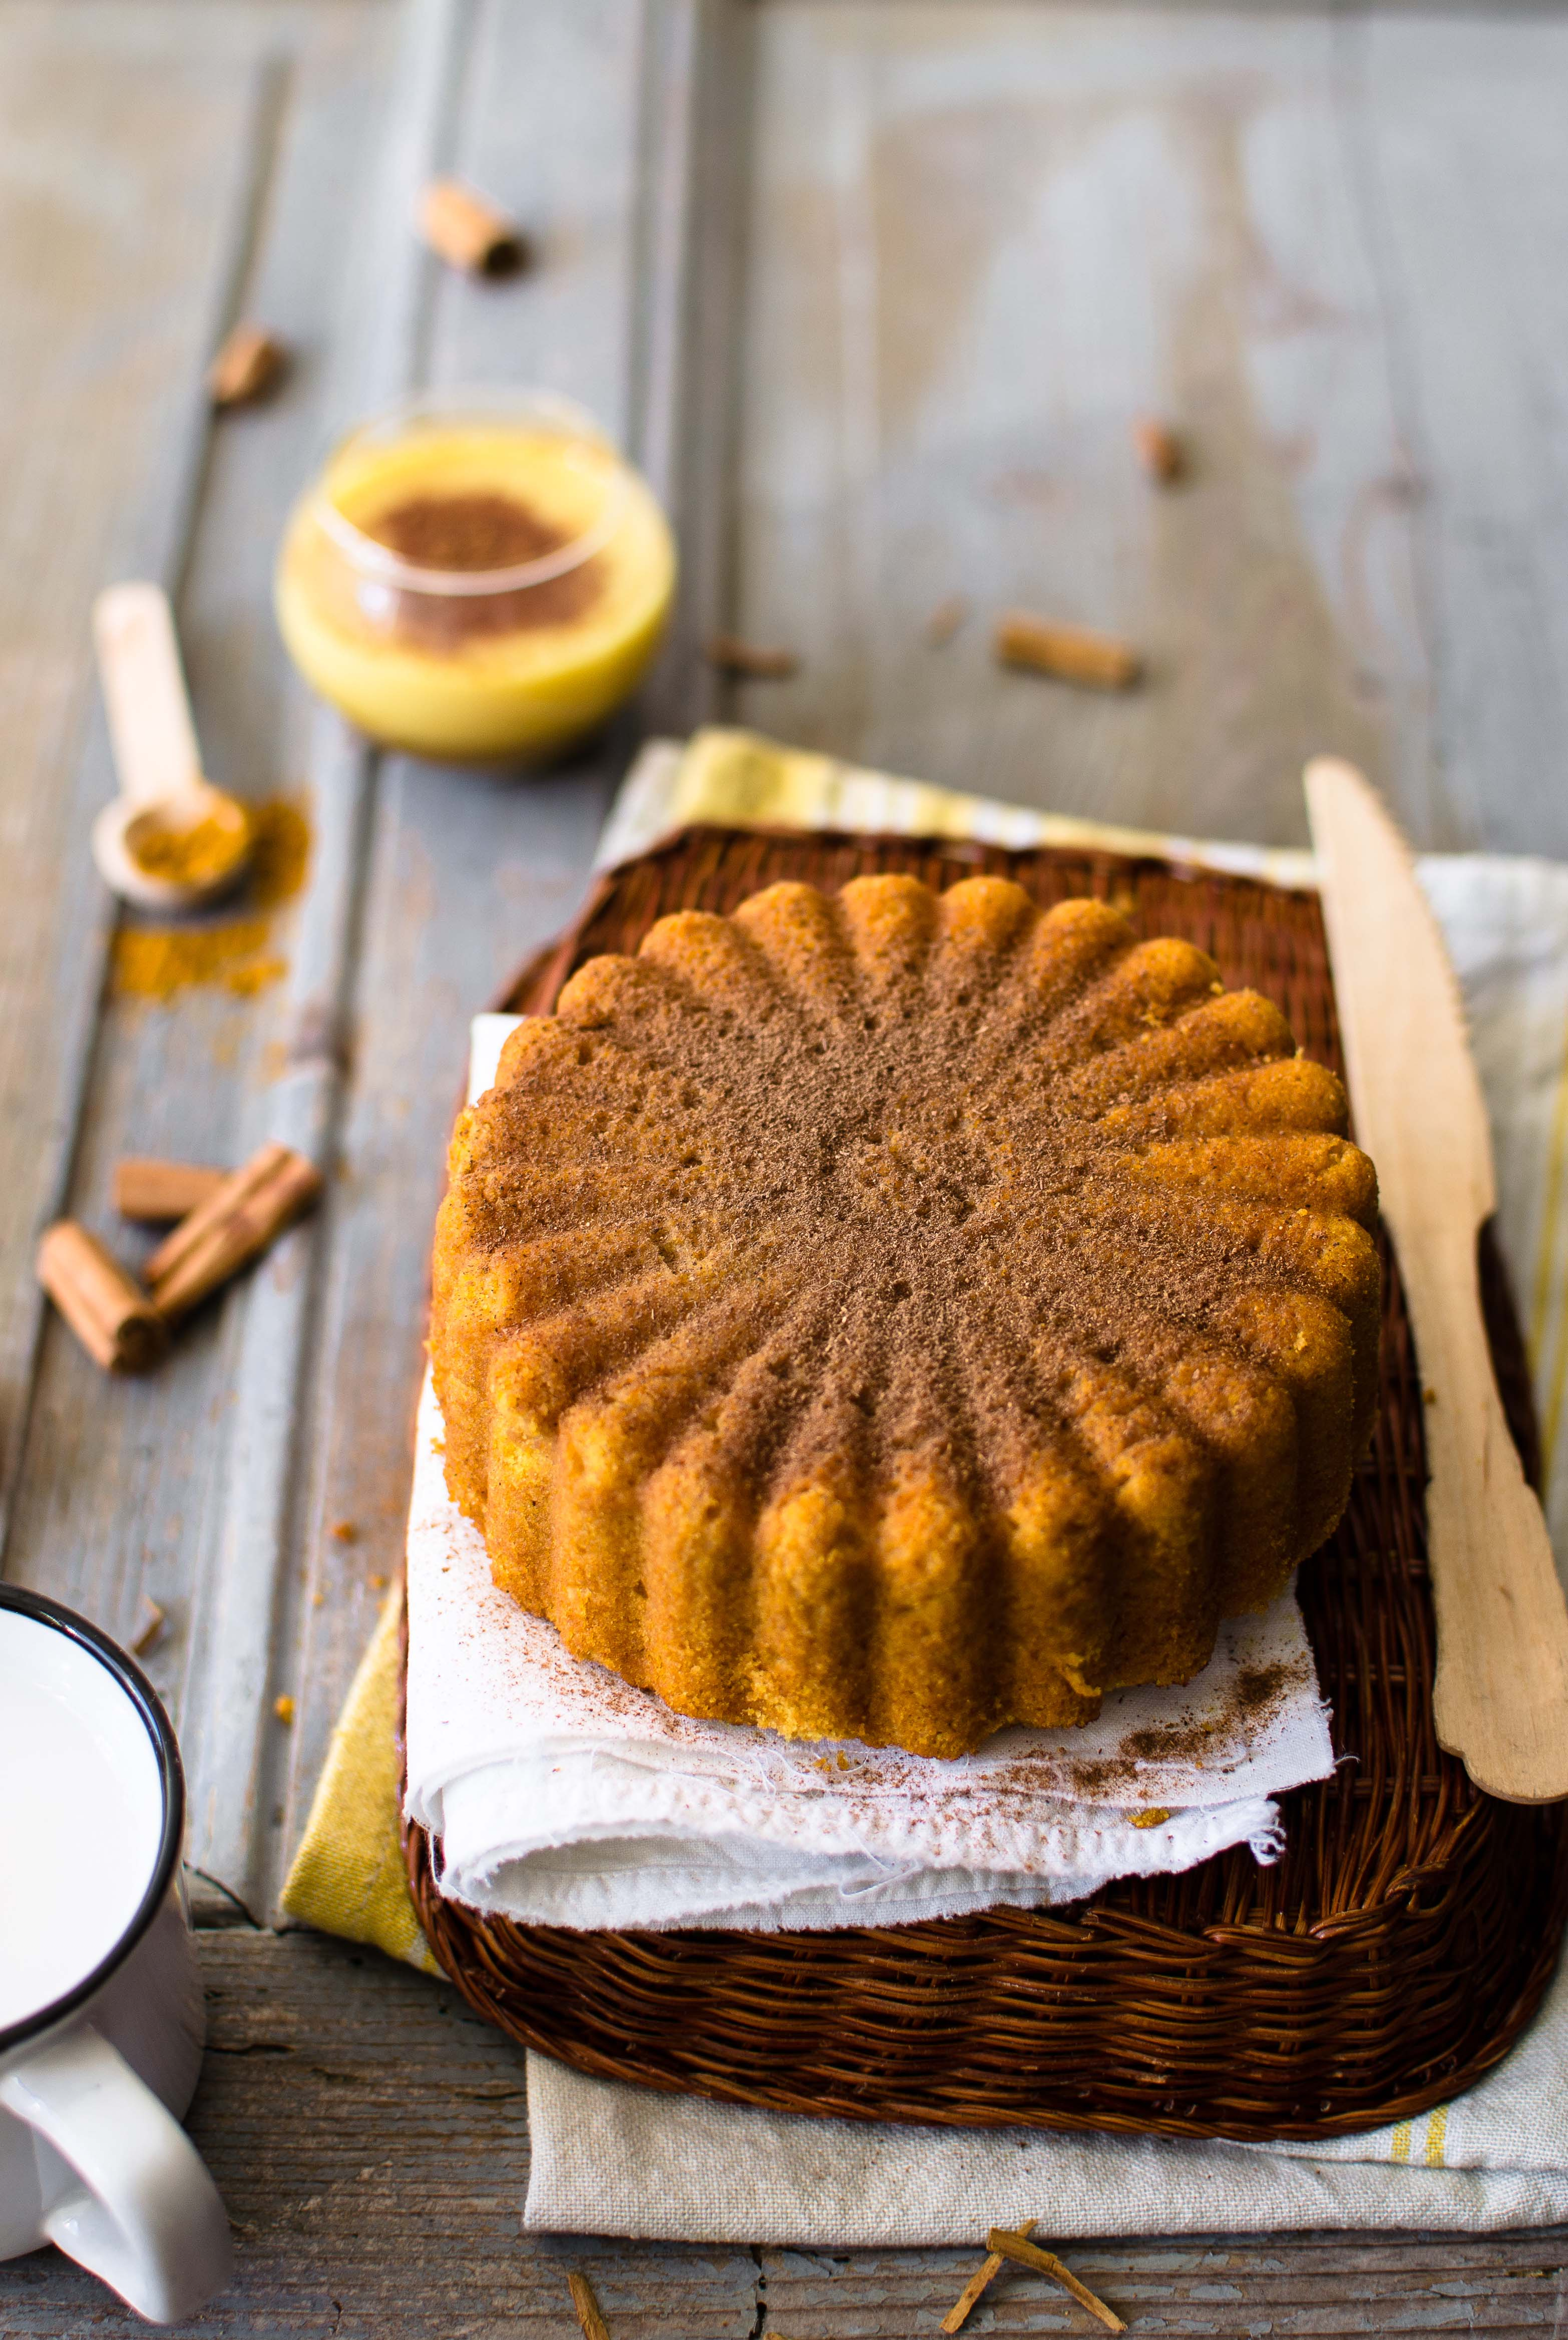 Torta-al-golden-milk Golden Milk cake